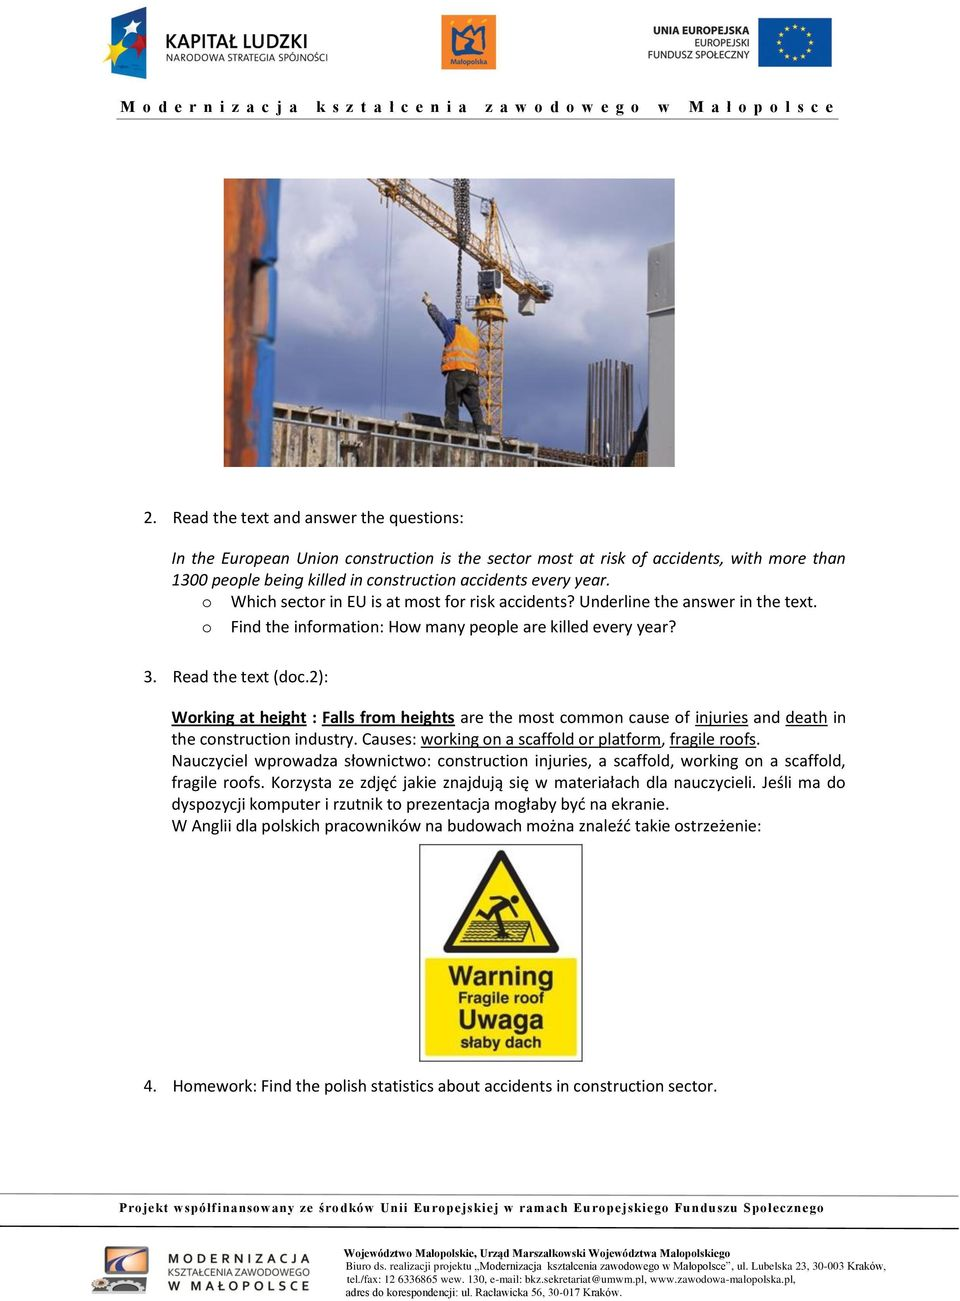 2): Working at height : Falls from heights are the most common cause of injuries and death in the construction industry. Causes: working on a scaffold or platform, fragile roofs.